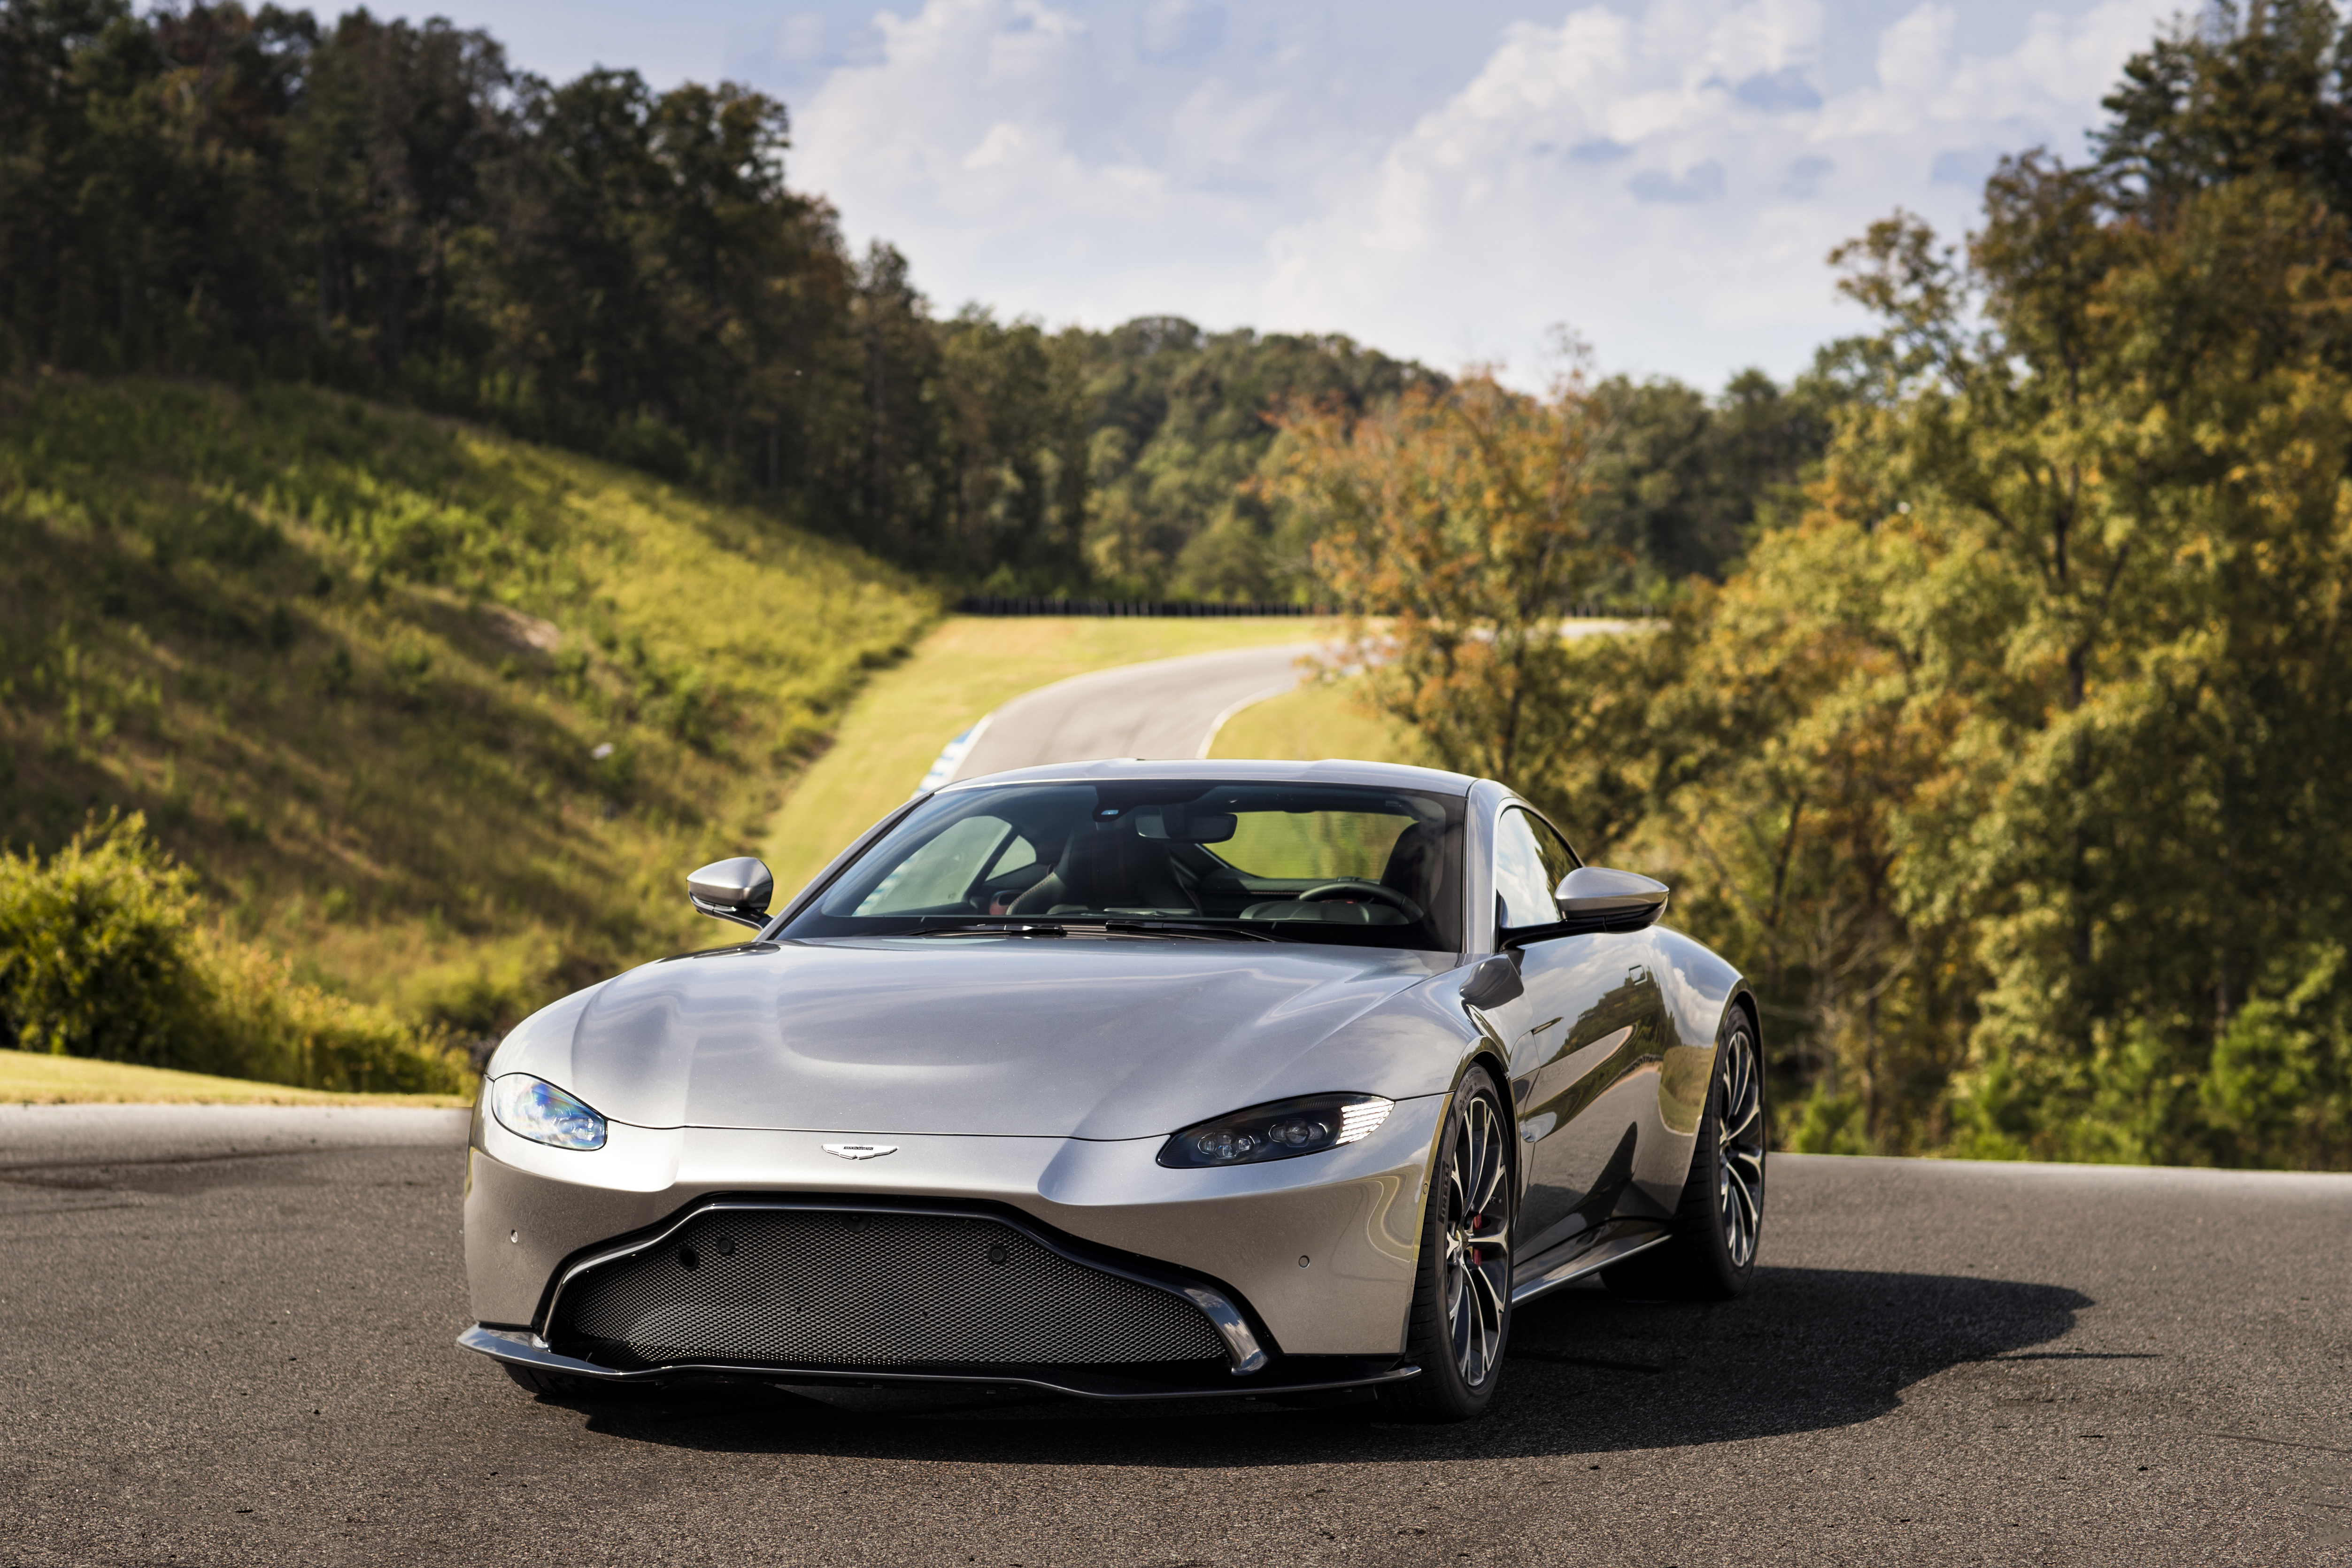 The Epitome of Speed and Elegance: The New Aston Martin Vantage 2018